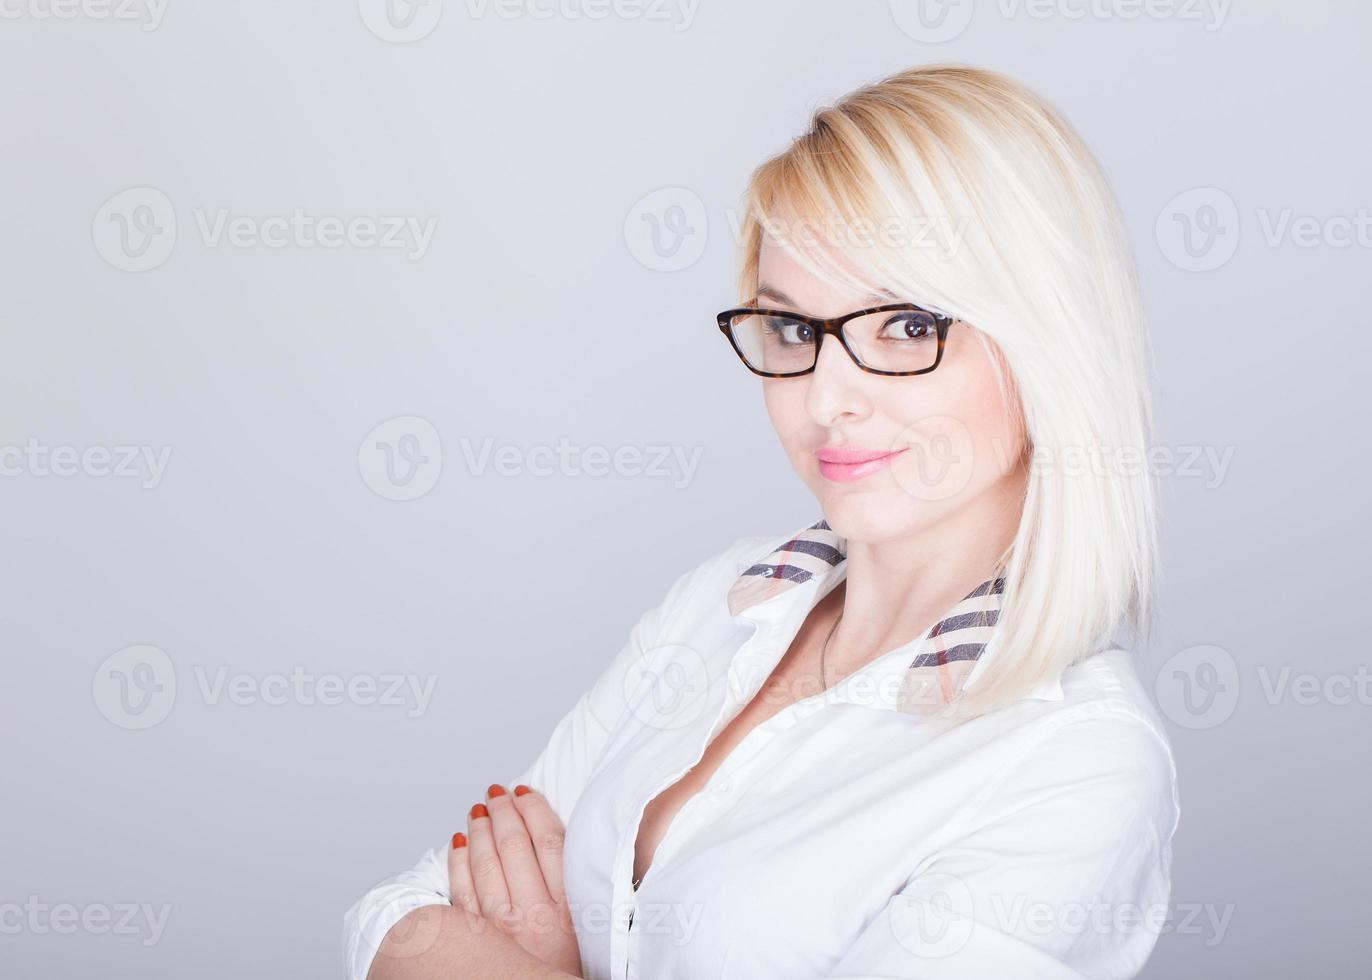 Young attractive woman in nerd glasses and button down shirt photo